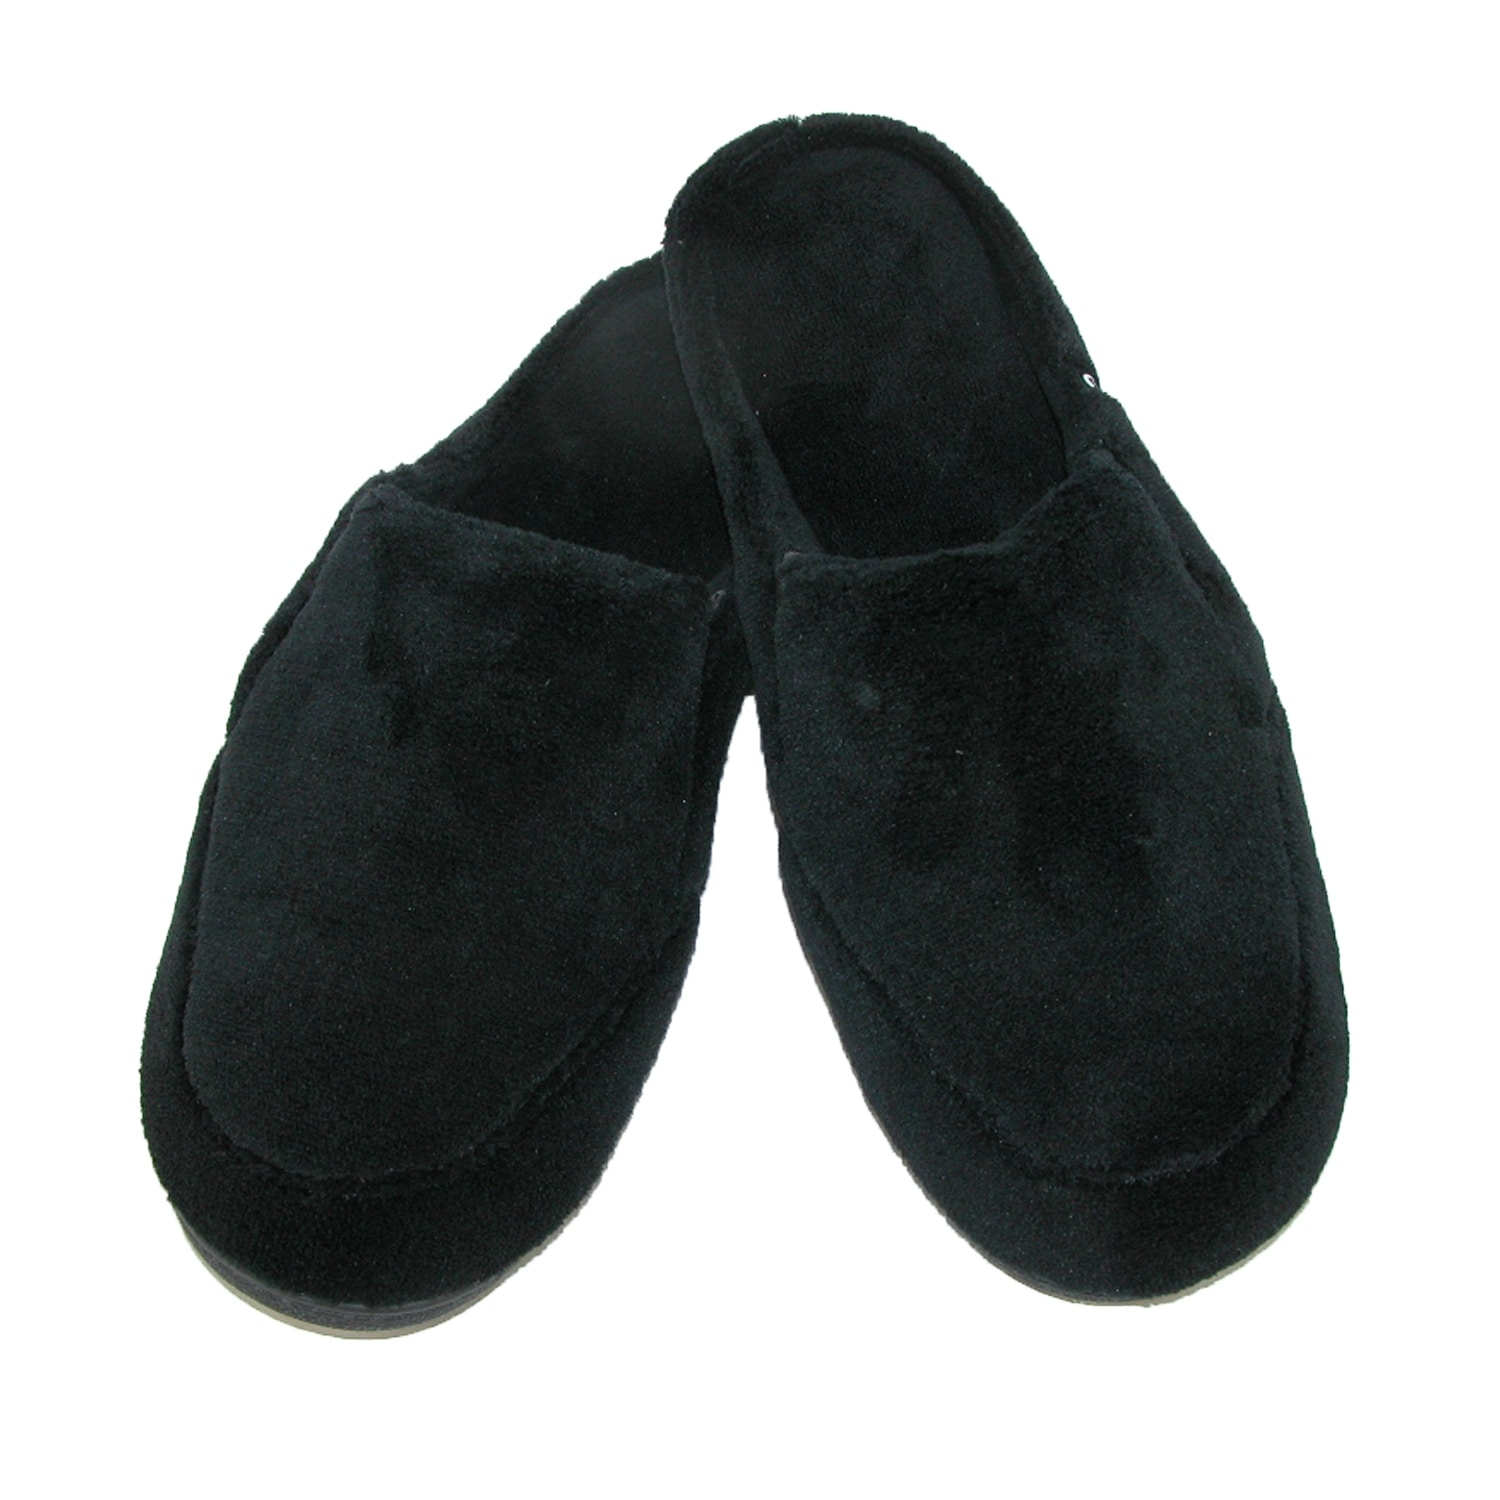 99c3fd99a Shop Isotoner Men s Microterry Open Back Clog Slippers - Free Shipping On  Orders Over  45 - Overstock - 14311249